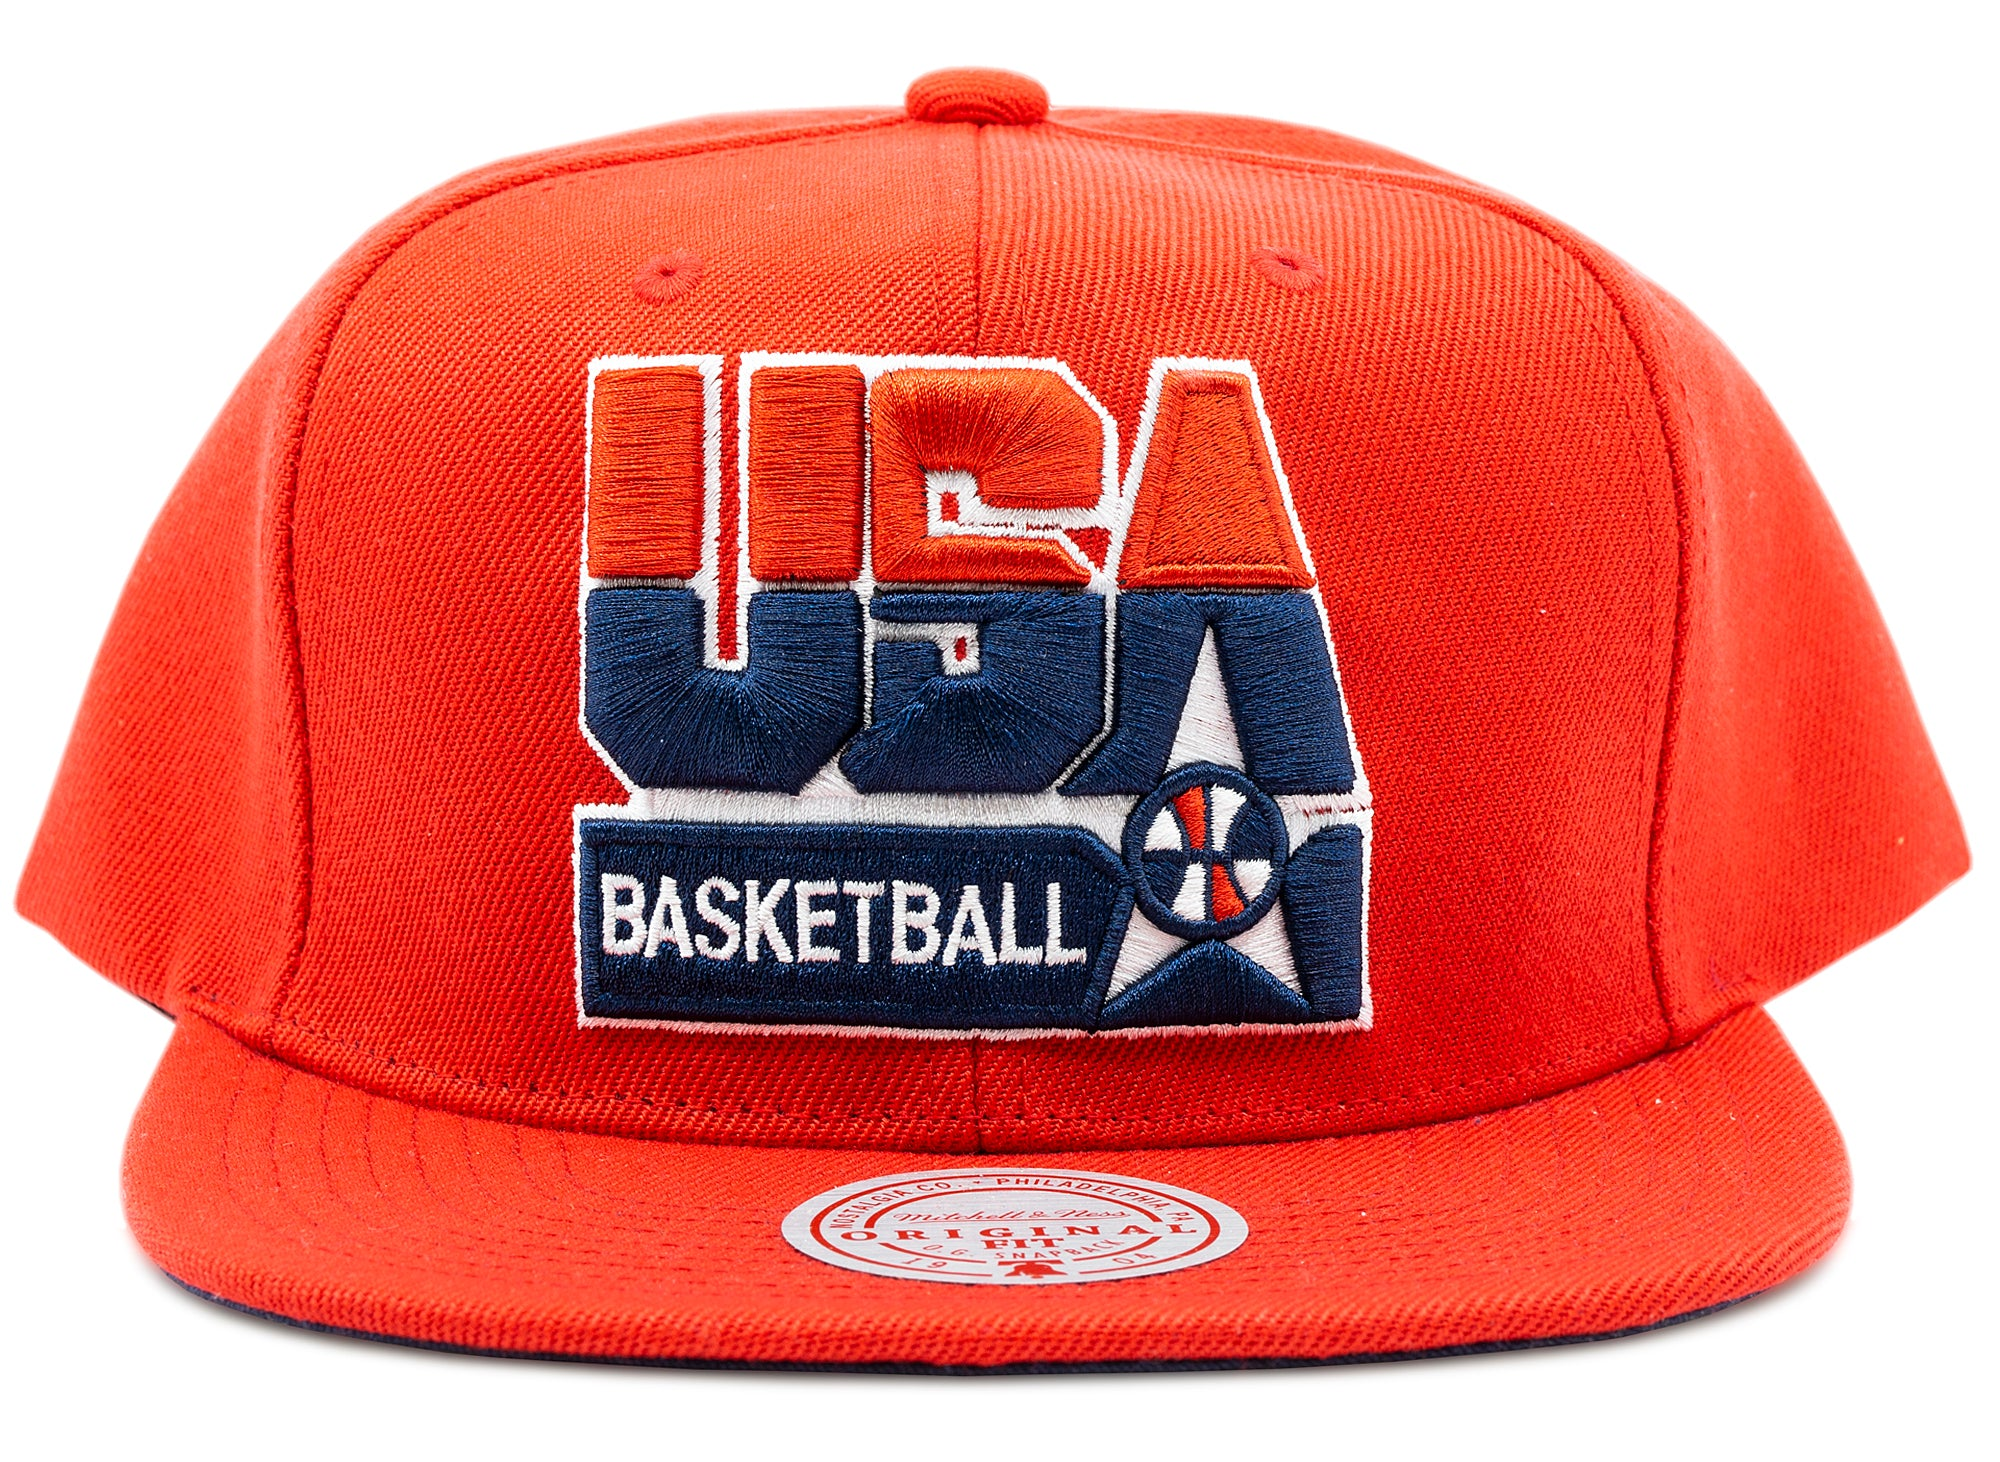 Mitchell & Ness USA Basketball Snapback Team USA in Red